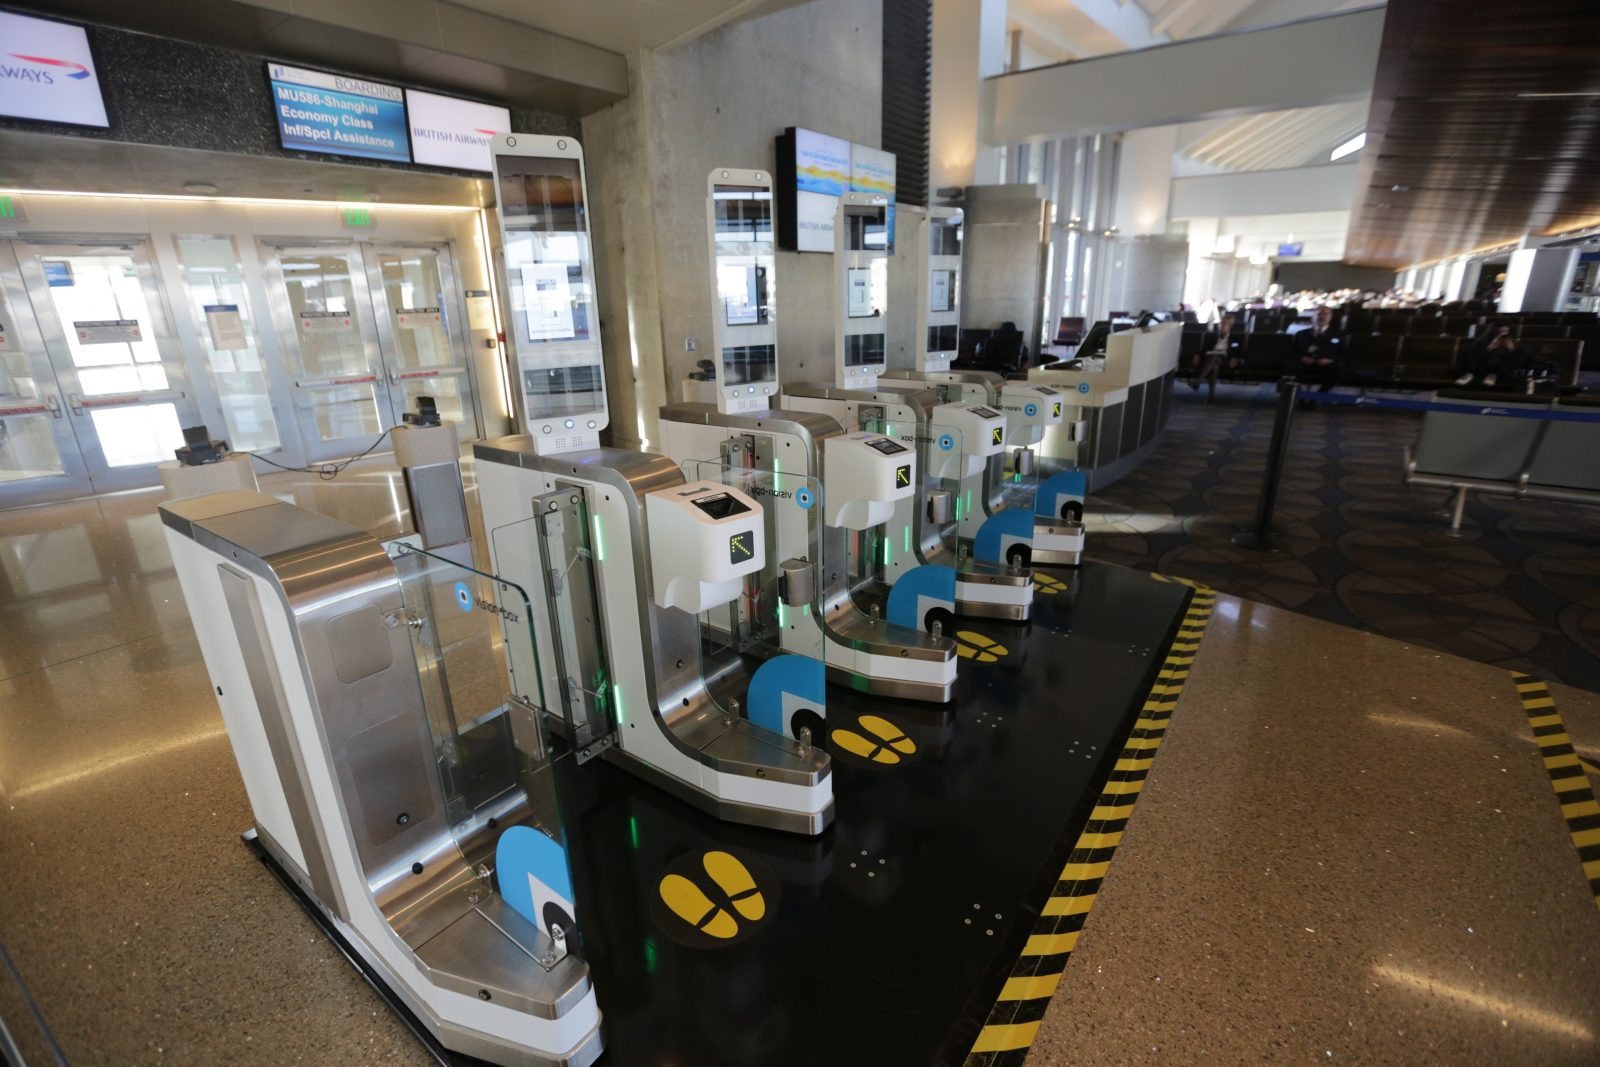 British Airways biometric boarding gates